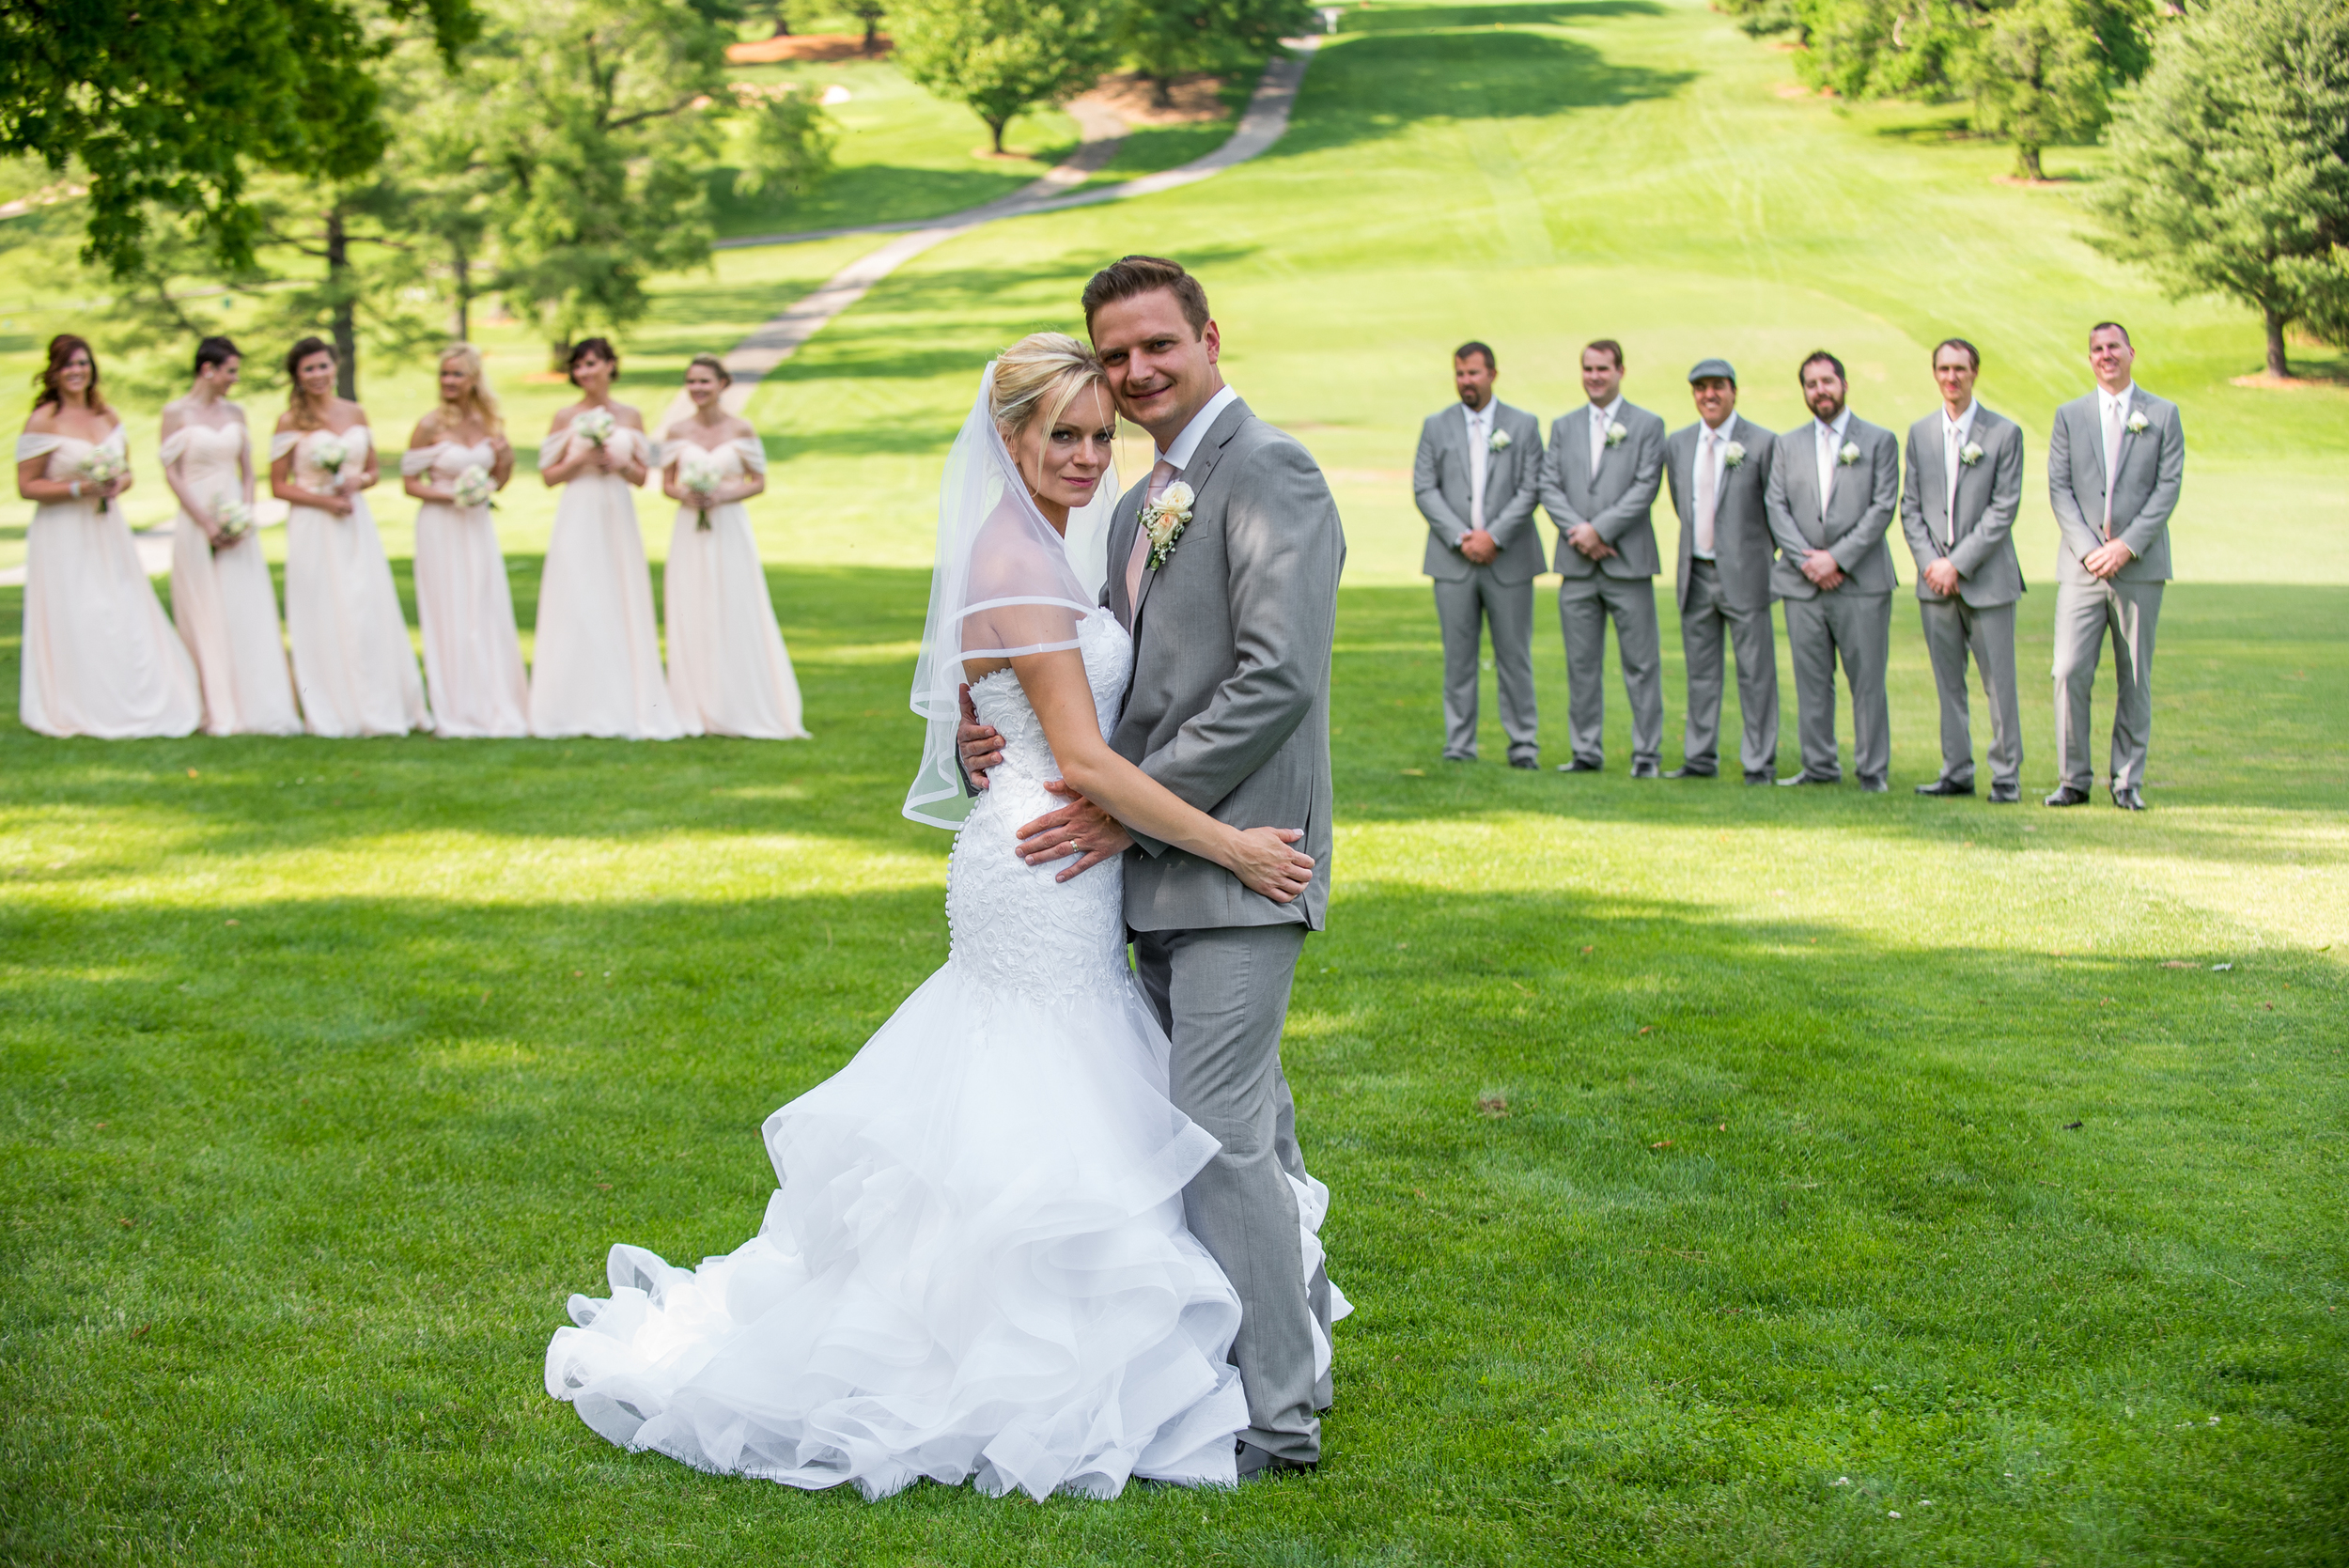 031Koper-Ekiert-Roanoke-Wedding-Virginia-Photographer-mattrossphotography.com.jpg